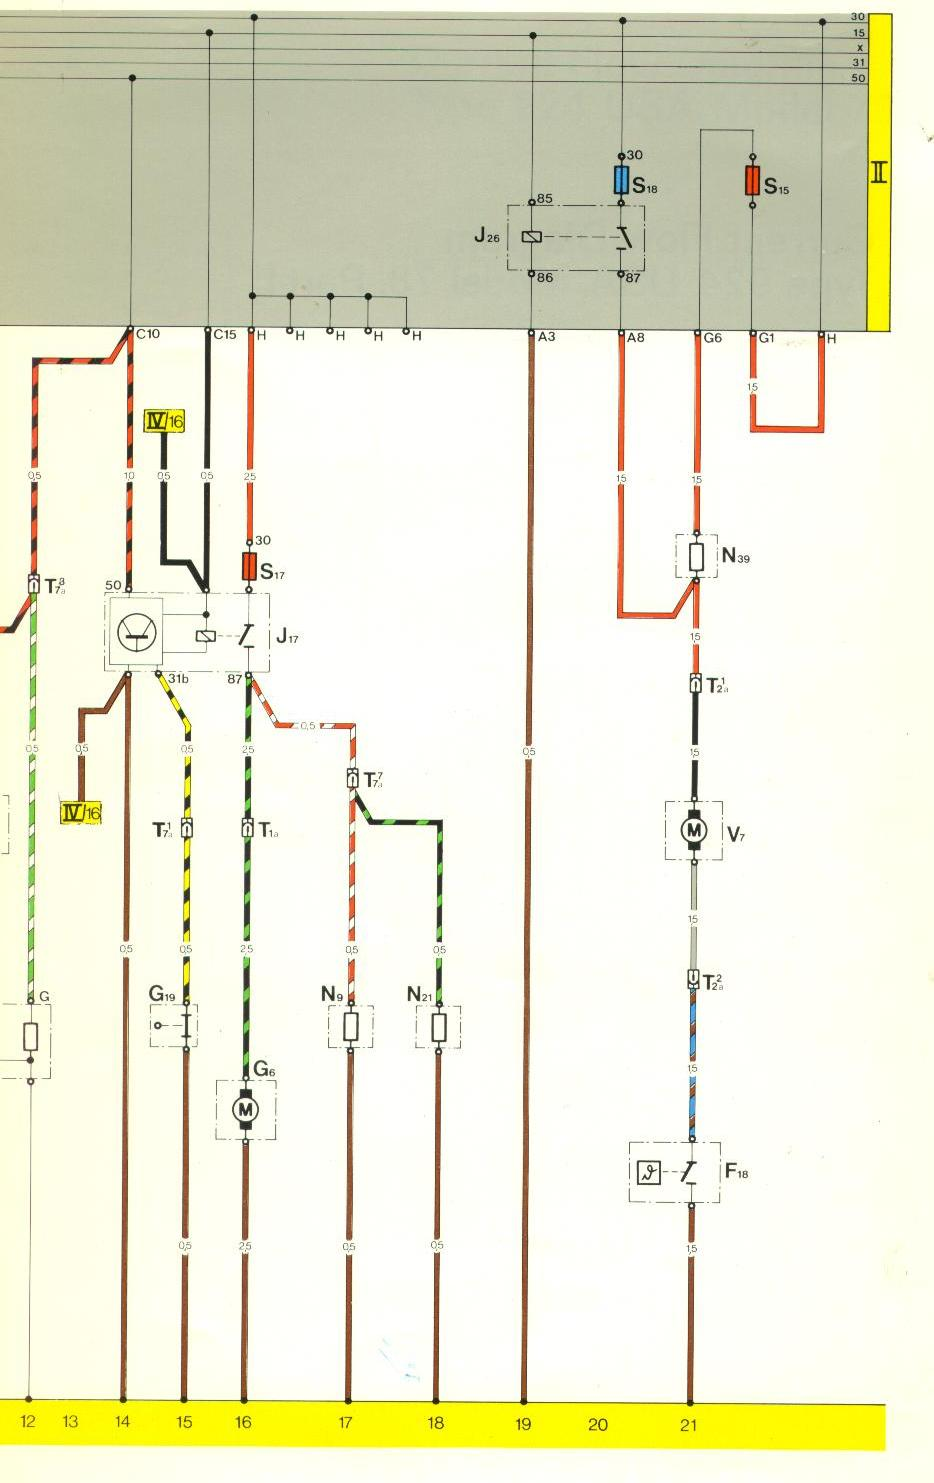 hight resolution of  circuit in current track 21 j 26 is the fan relay v7 is the fan motor f 18 is the temperature switch and the 21 terminus at the bottom of the page is